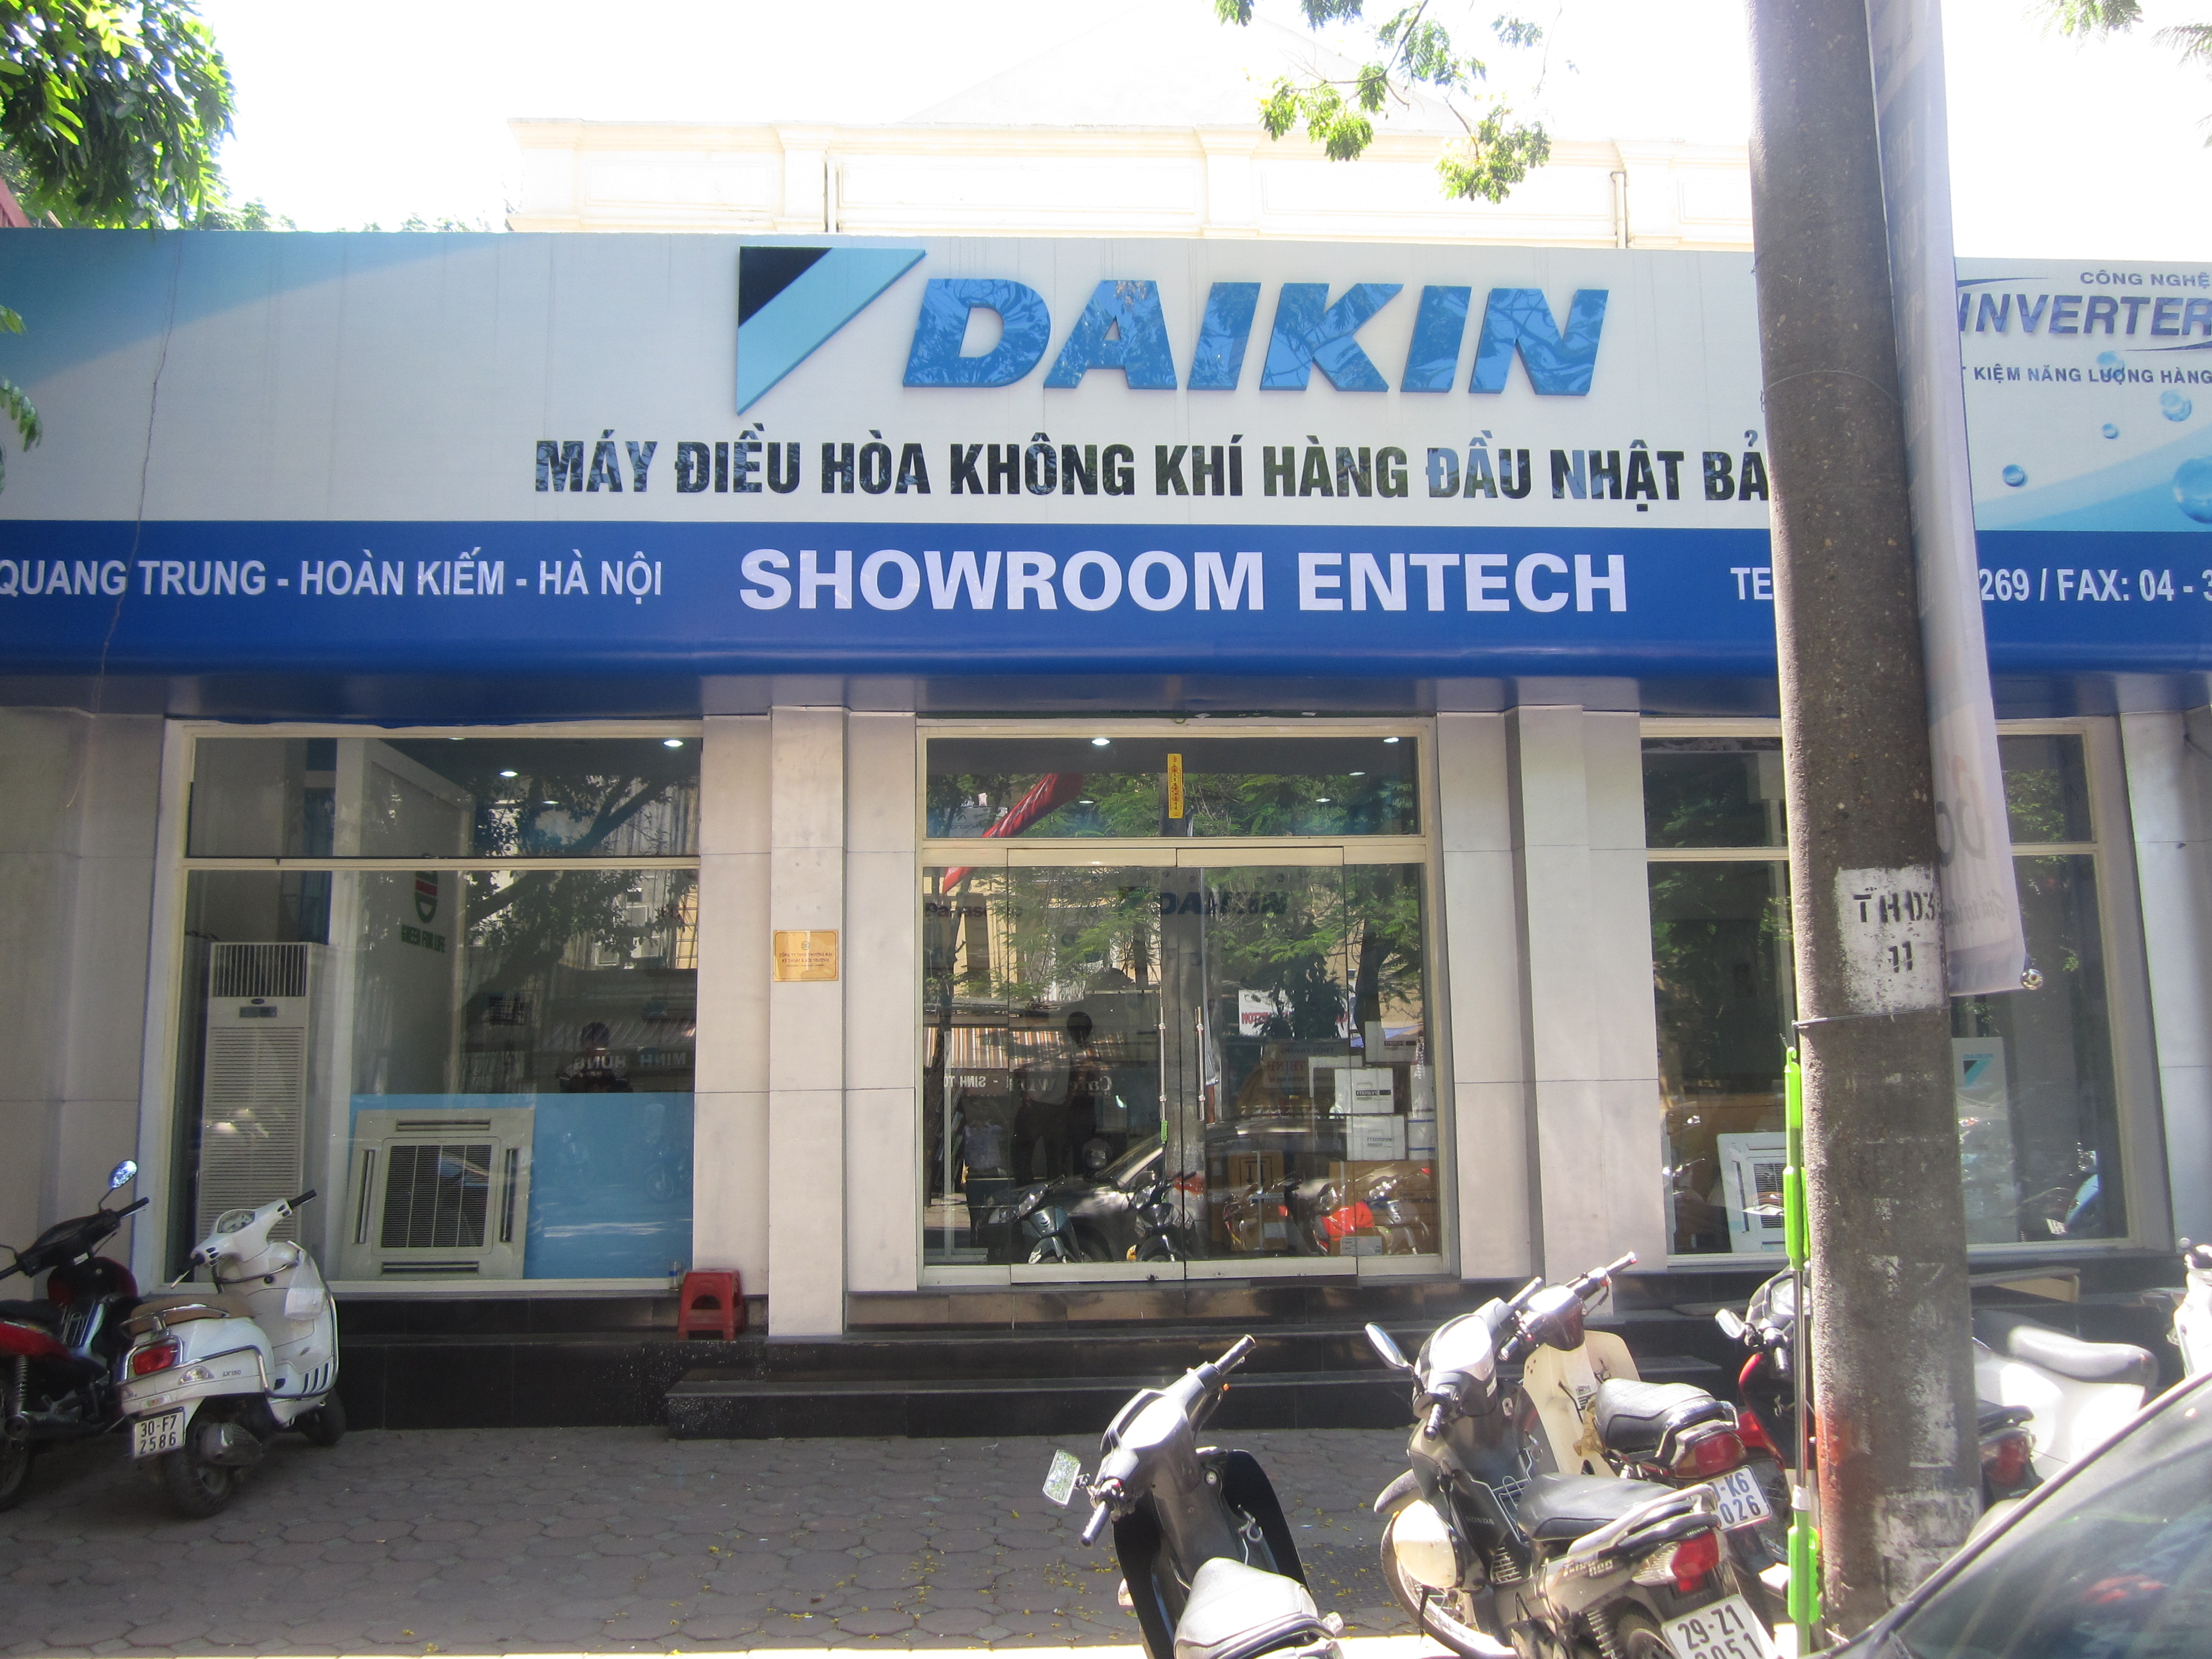 SHOWROOM ENTECH